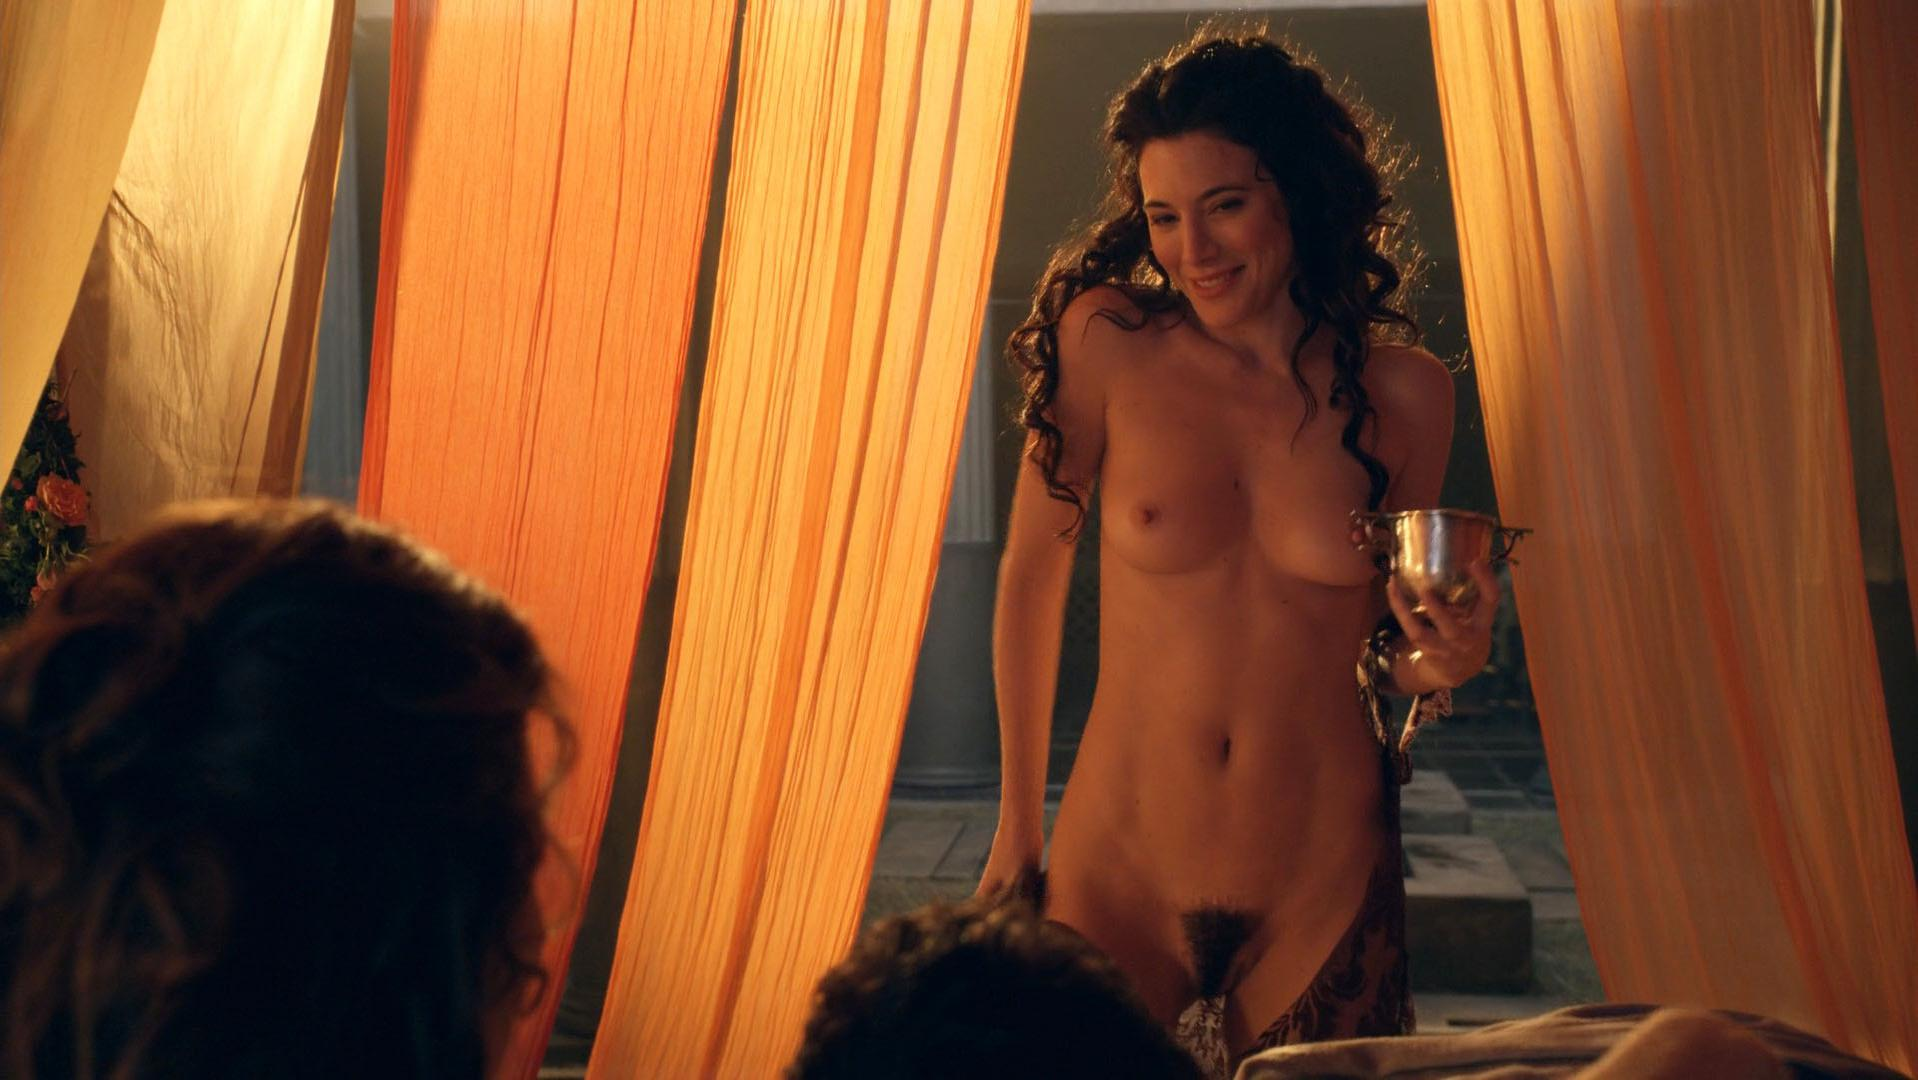 Lucy Lawless nude, Jaime Murray nude - Spartacus. Gods of the Arena s01e03 (2011)